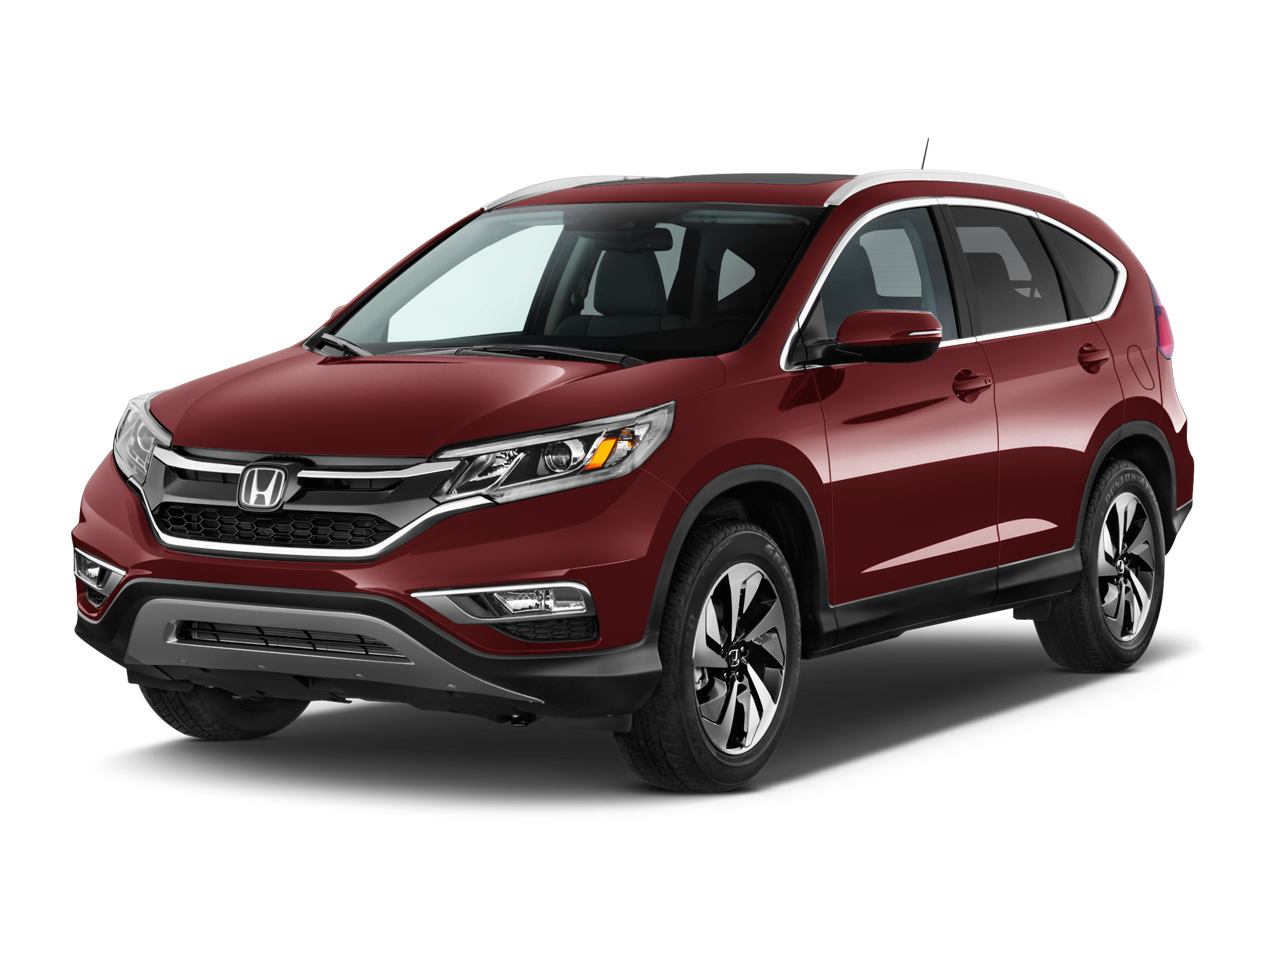 honda crv used 2016 2017 2018 2019 honda reviews. Black Bedroom Furniture Sets. Home Design Ideas